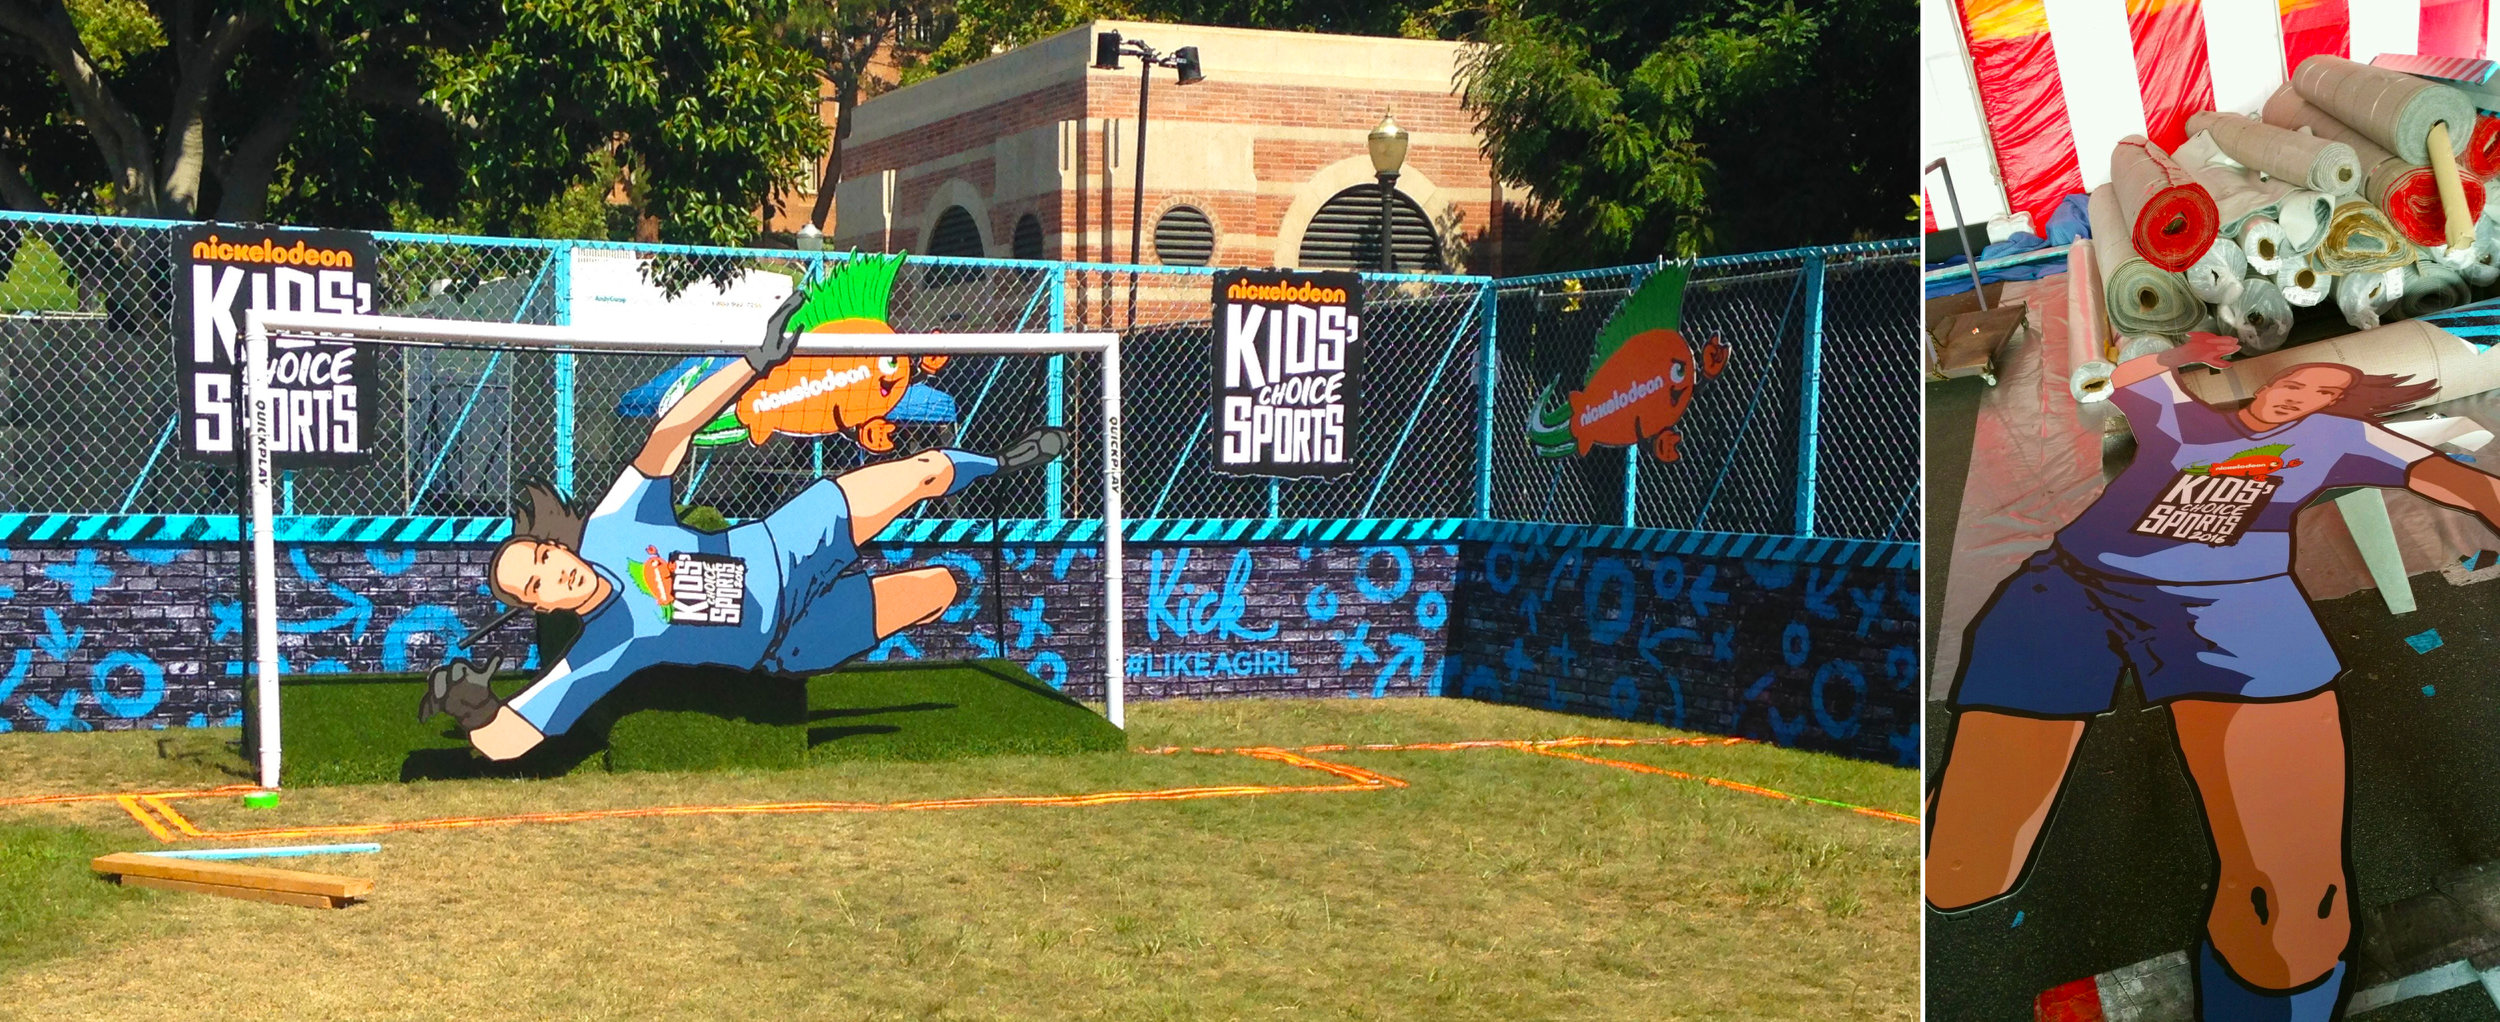 Nickelodeon_Sports Awards Soccer Fielld.jpg